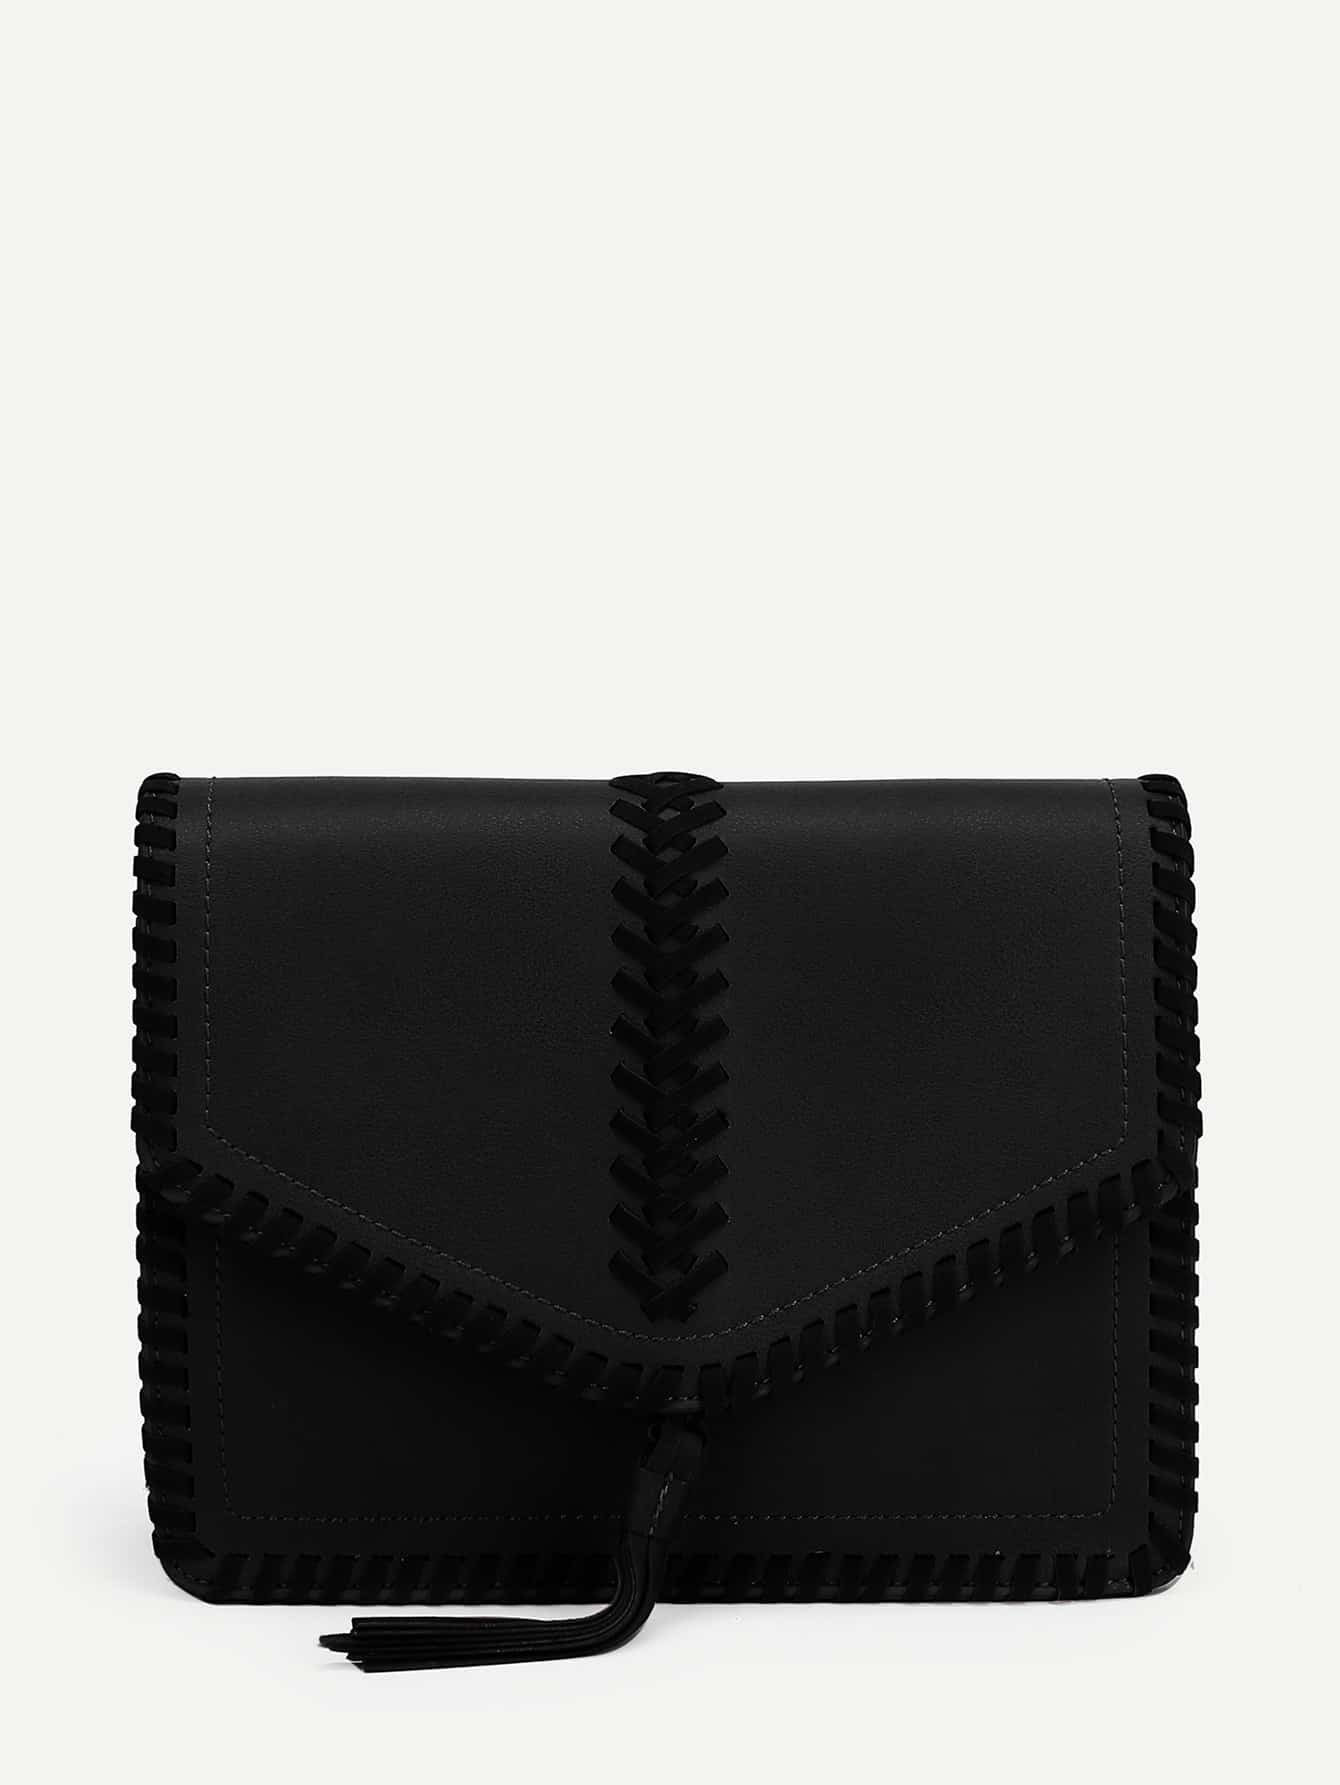 Tassel Detail Flap PU Crossbody Bag tassel detail straw crossbody bag